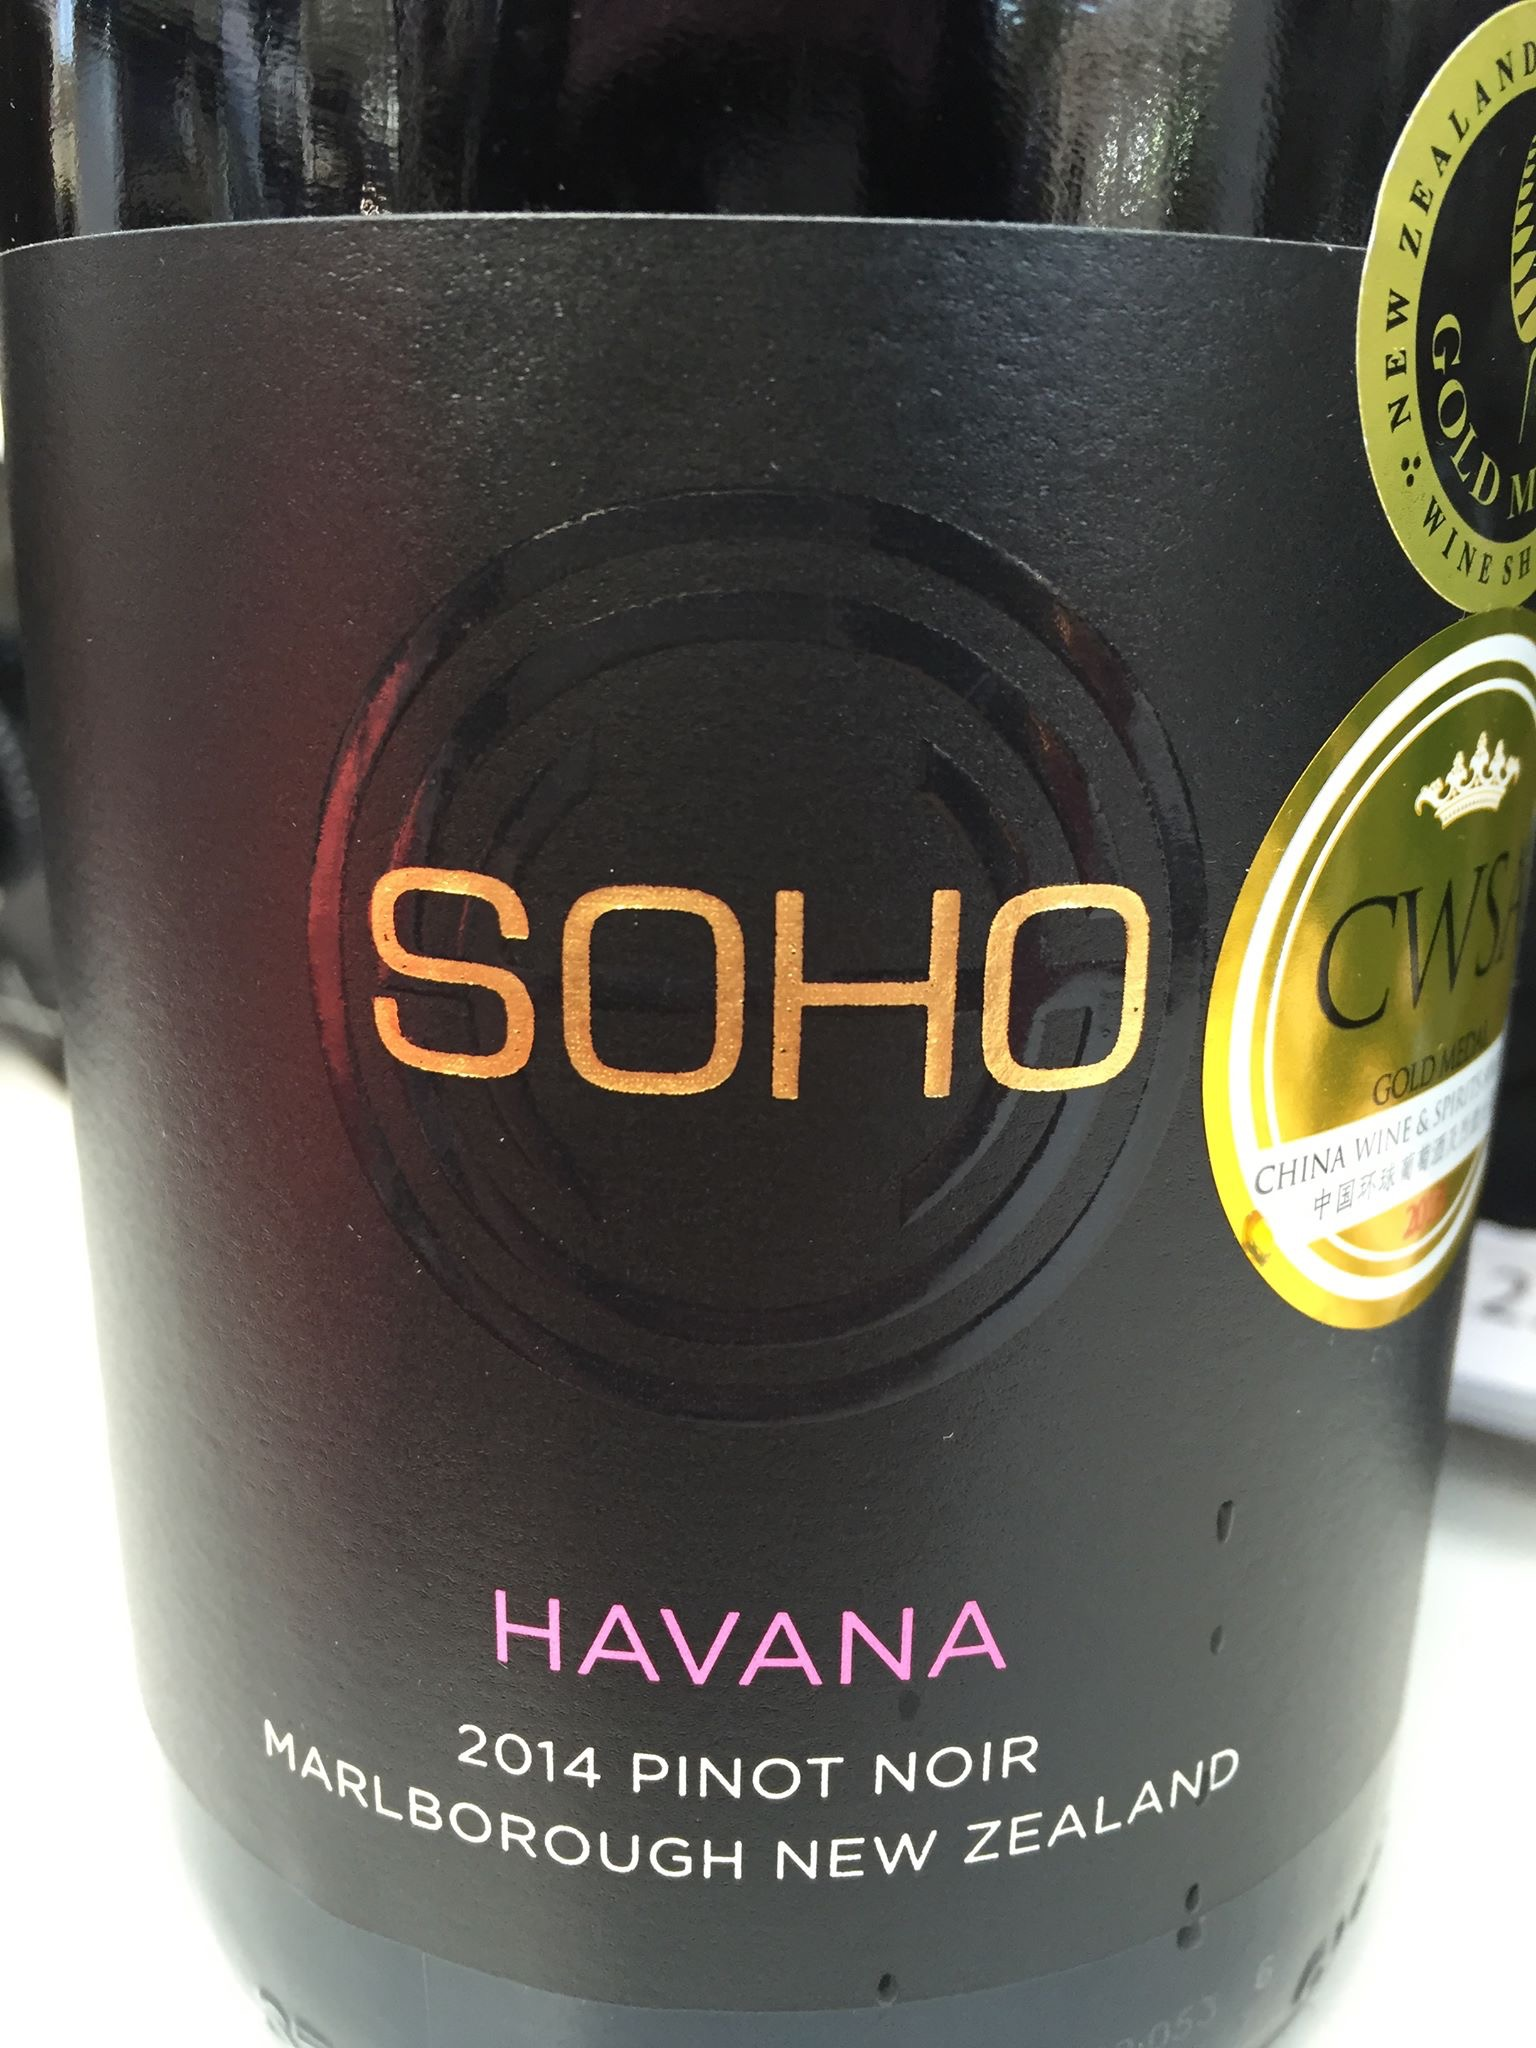 Soho – Havana – Pinot Noir 2014 – Marlborough